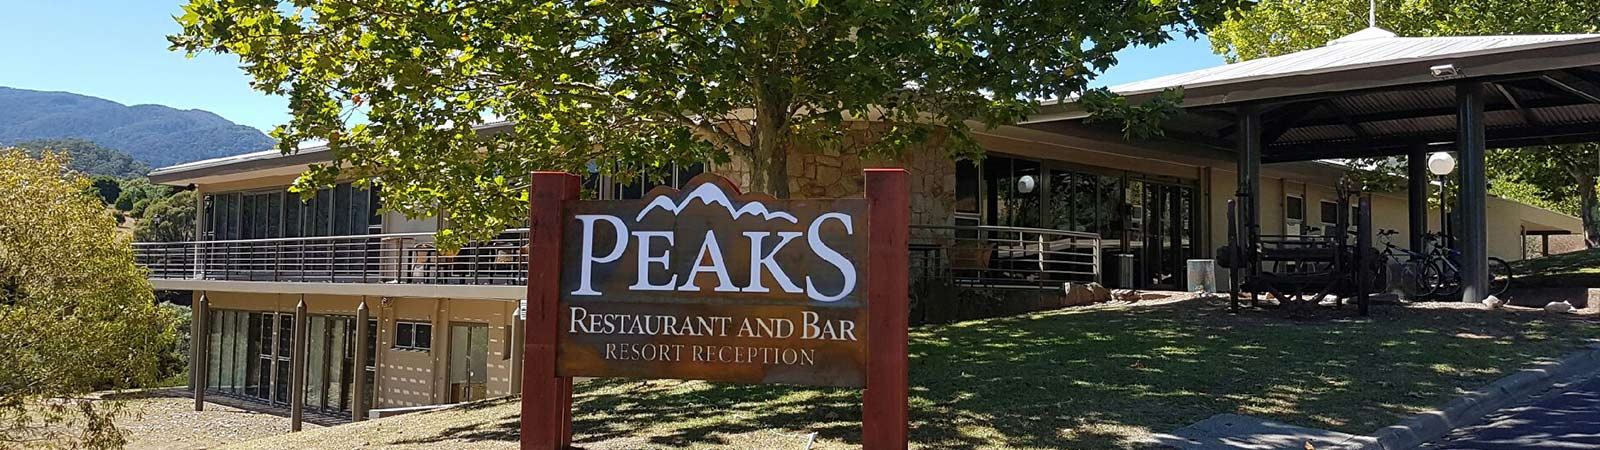 Peaks Restaurant at The Sebel Pinnacle Valley Resort